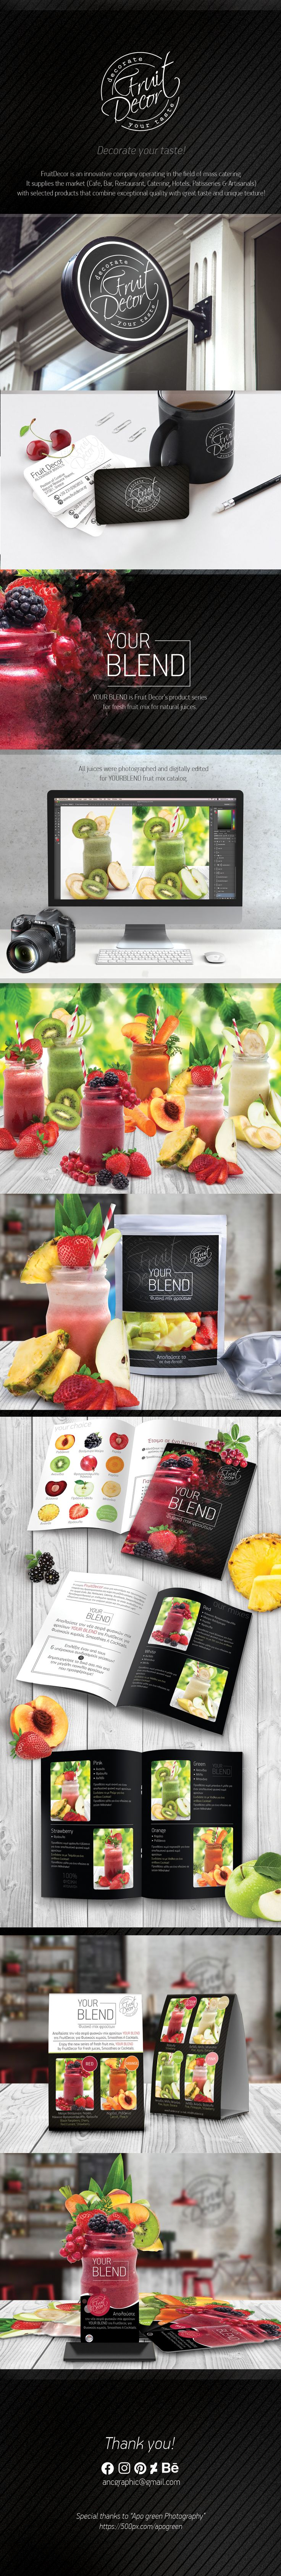 """Check out my @Behance project: """"Fruit Decor Corporate ID & Products"""" https://www.behance.net/gallery/57301077/Fruit-Decor-Corporate-ID-Products"""